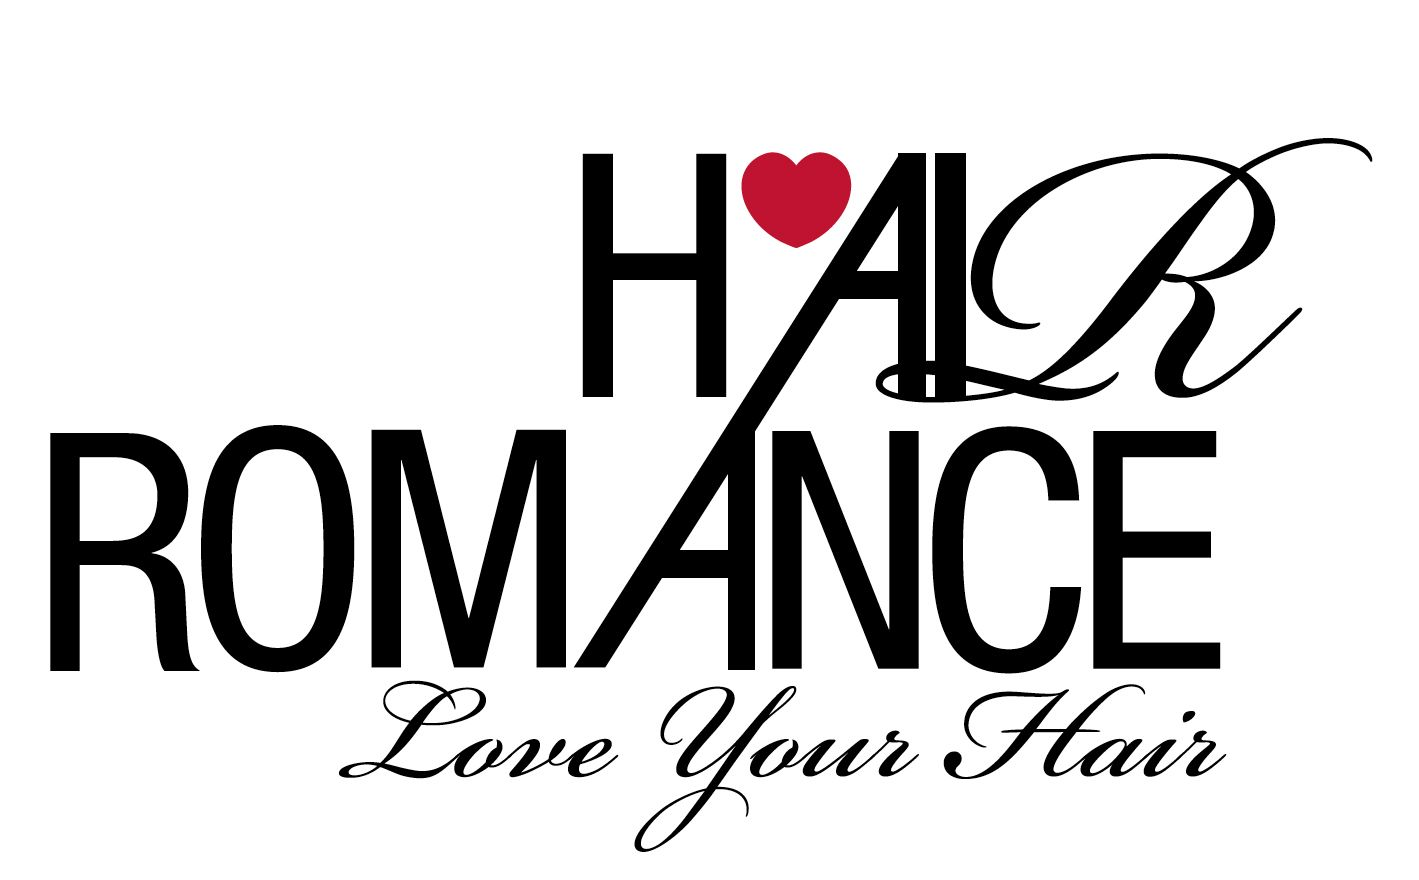 Love Your Hair With Images Hair Romance Love Your Hair